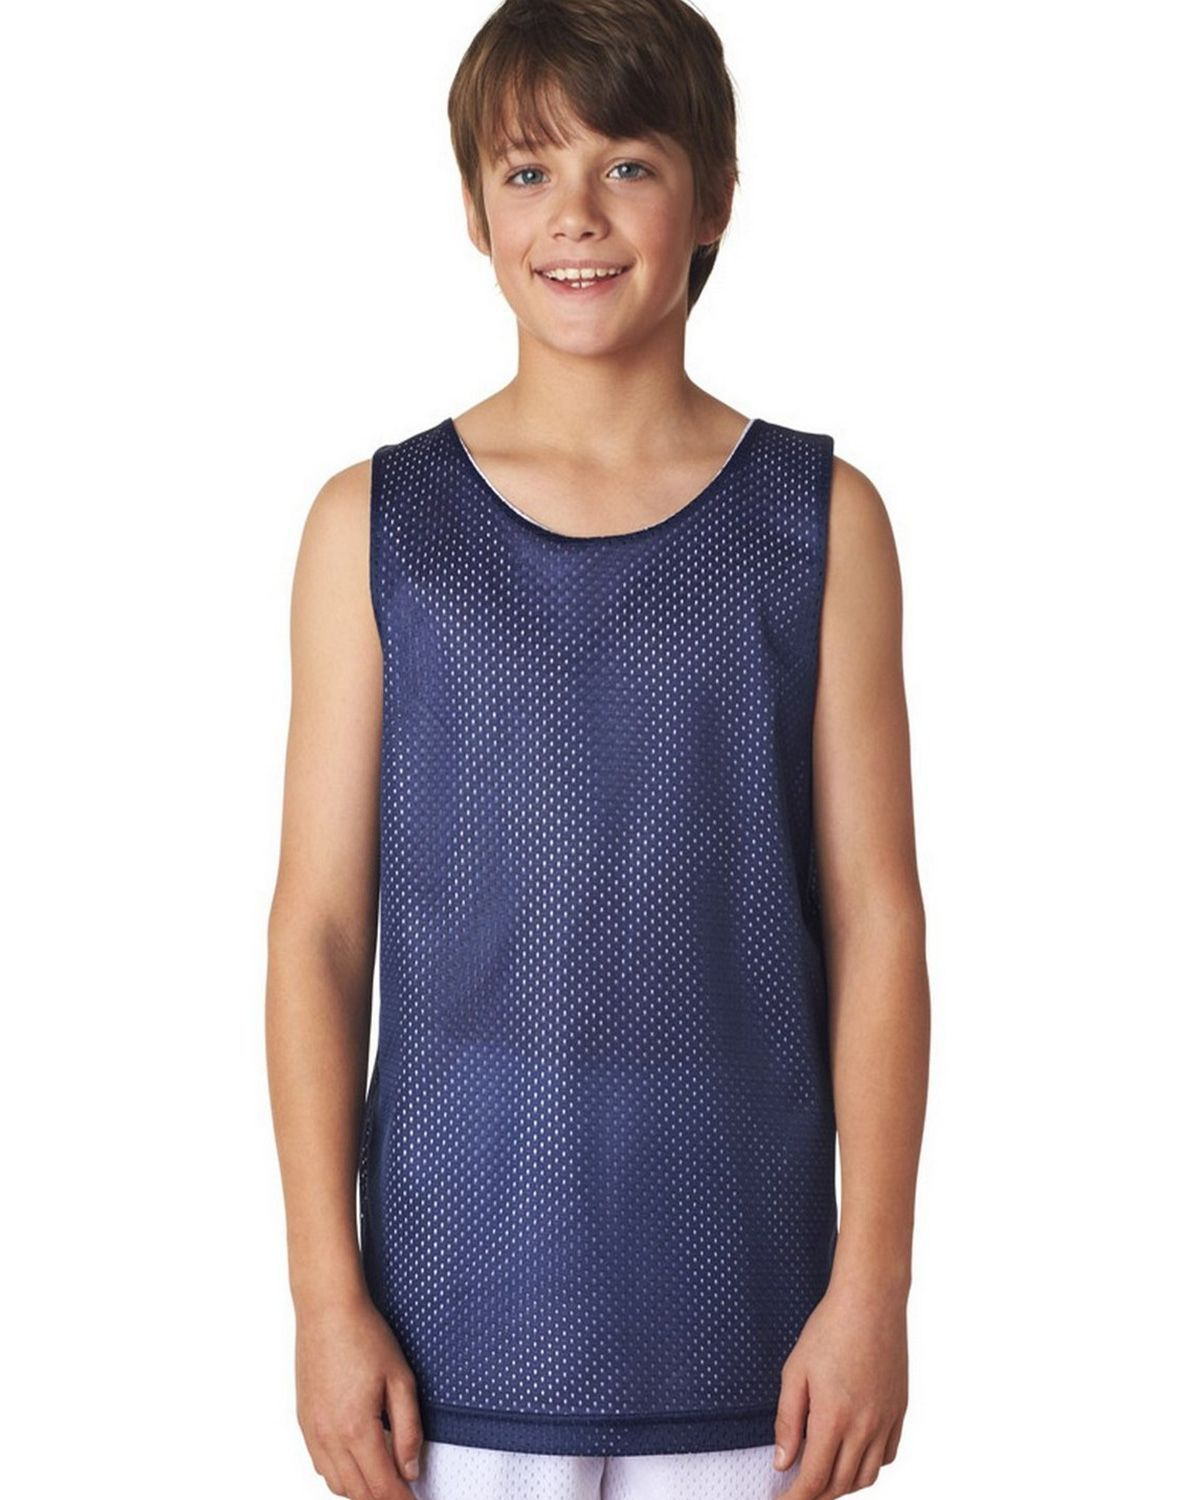 Image of A4 N2206 Youth Reversible Mesh Tank - Navy/White - S